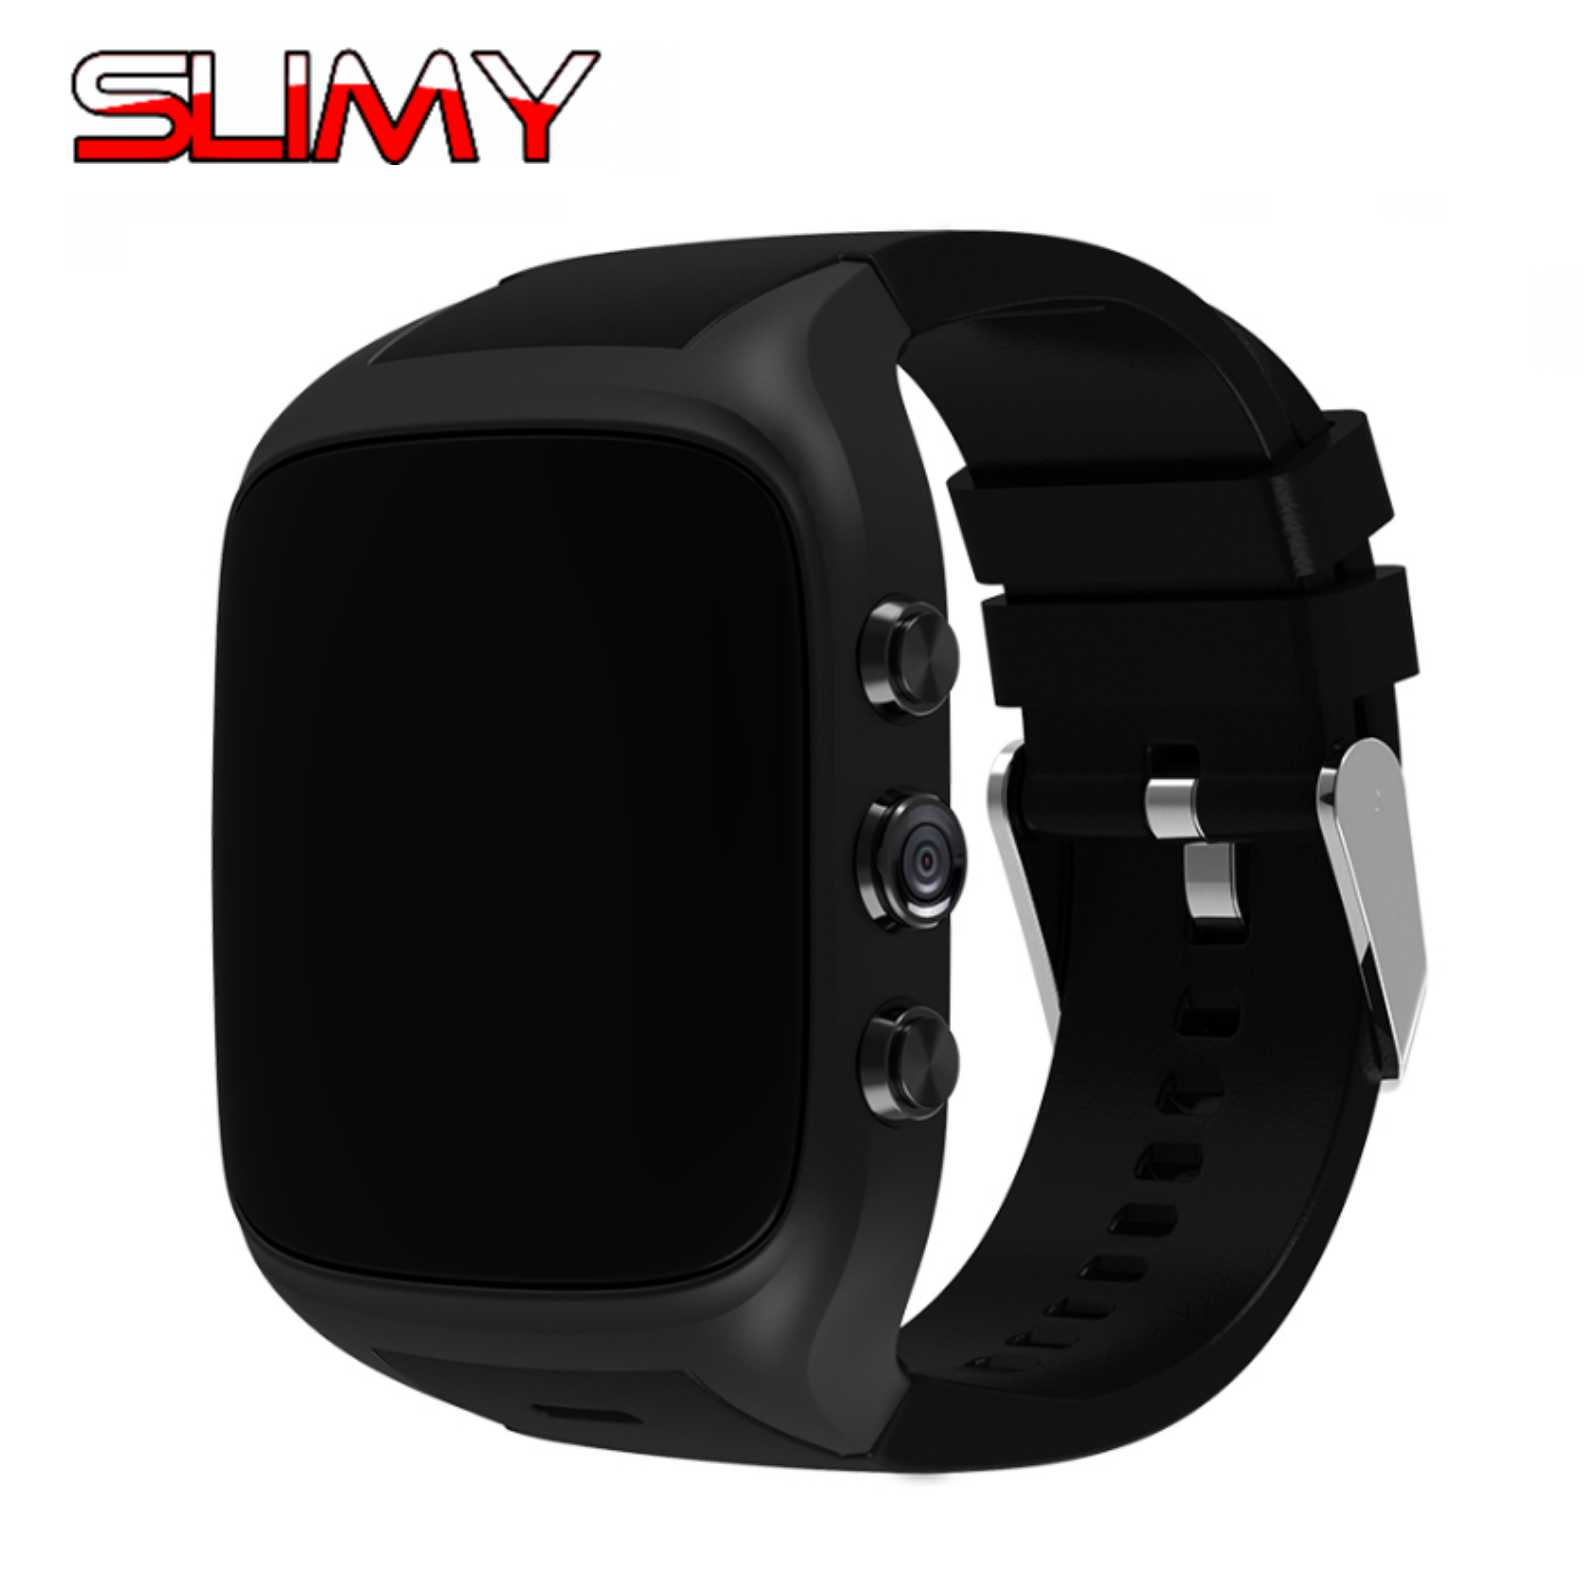 Slimy X0S Smart Watch Phone Android 5.1 OS MTK6580 8GB 2MP Camera Smartwatch Wifi 3G SIM Card GPS Smart Watch for Men Women Kids kinco mtk 6580 512mb 8gb bluetooth camera gps smart watch phone heart rate sim pedometer sos smart watches for ios android